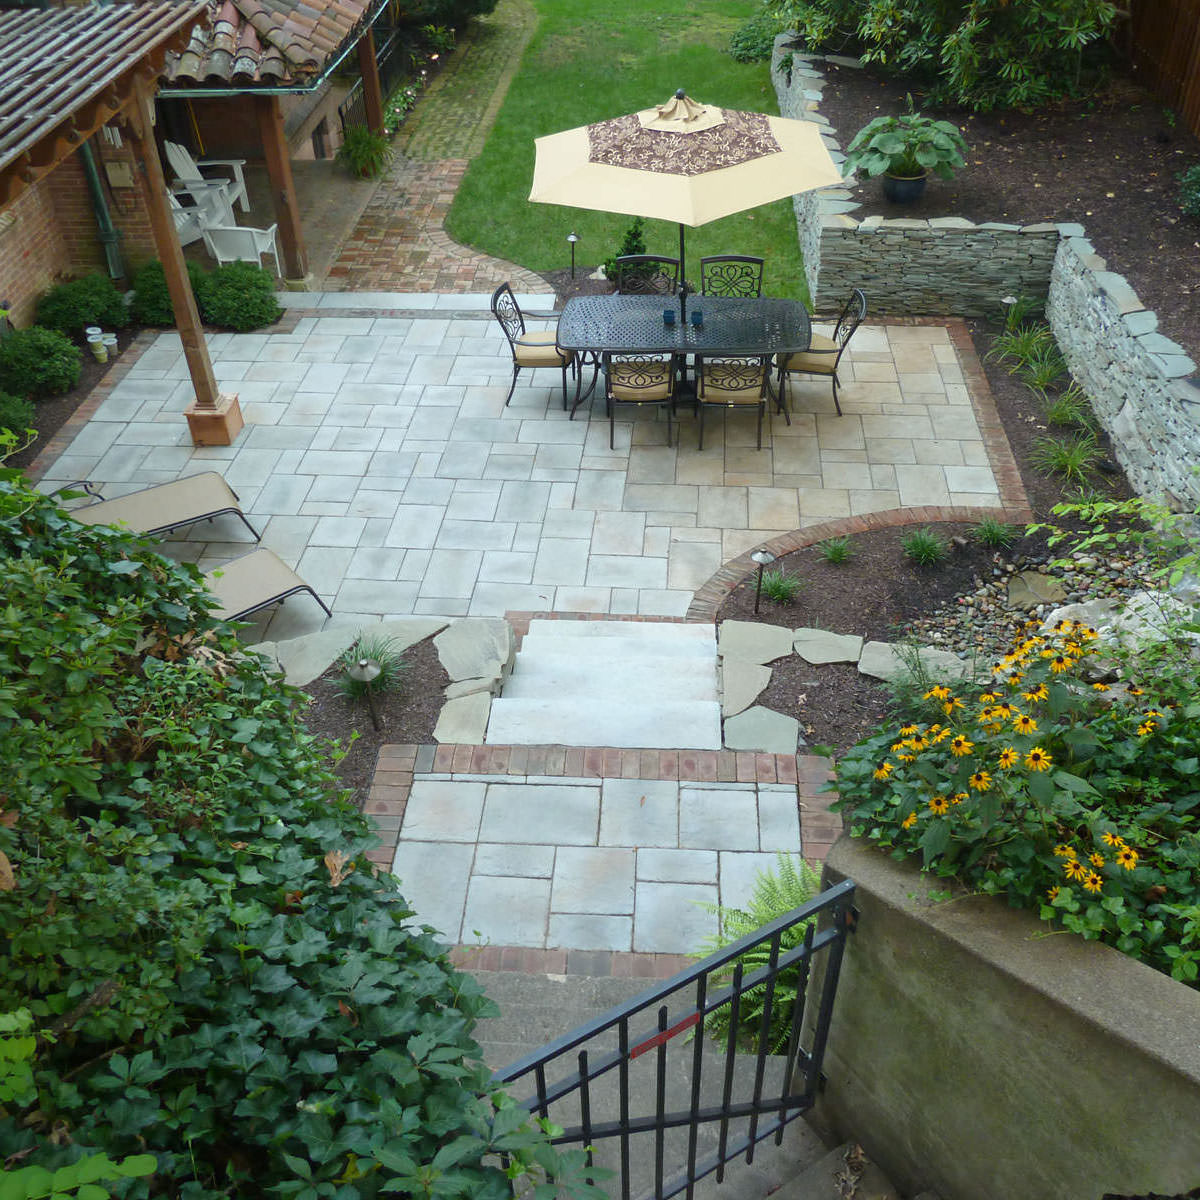 This outdoor living project in Easton, PA had its challenges, but creative design and precision installation helped this historical home come back to life!